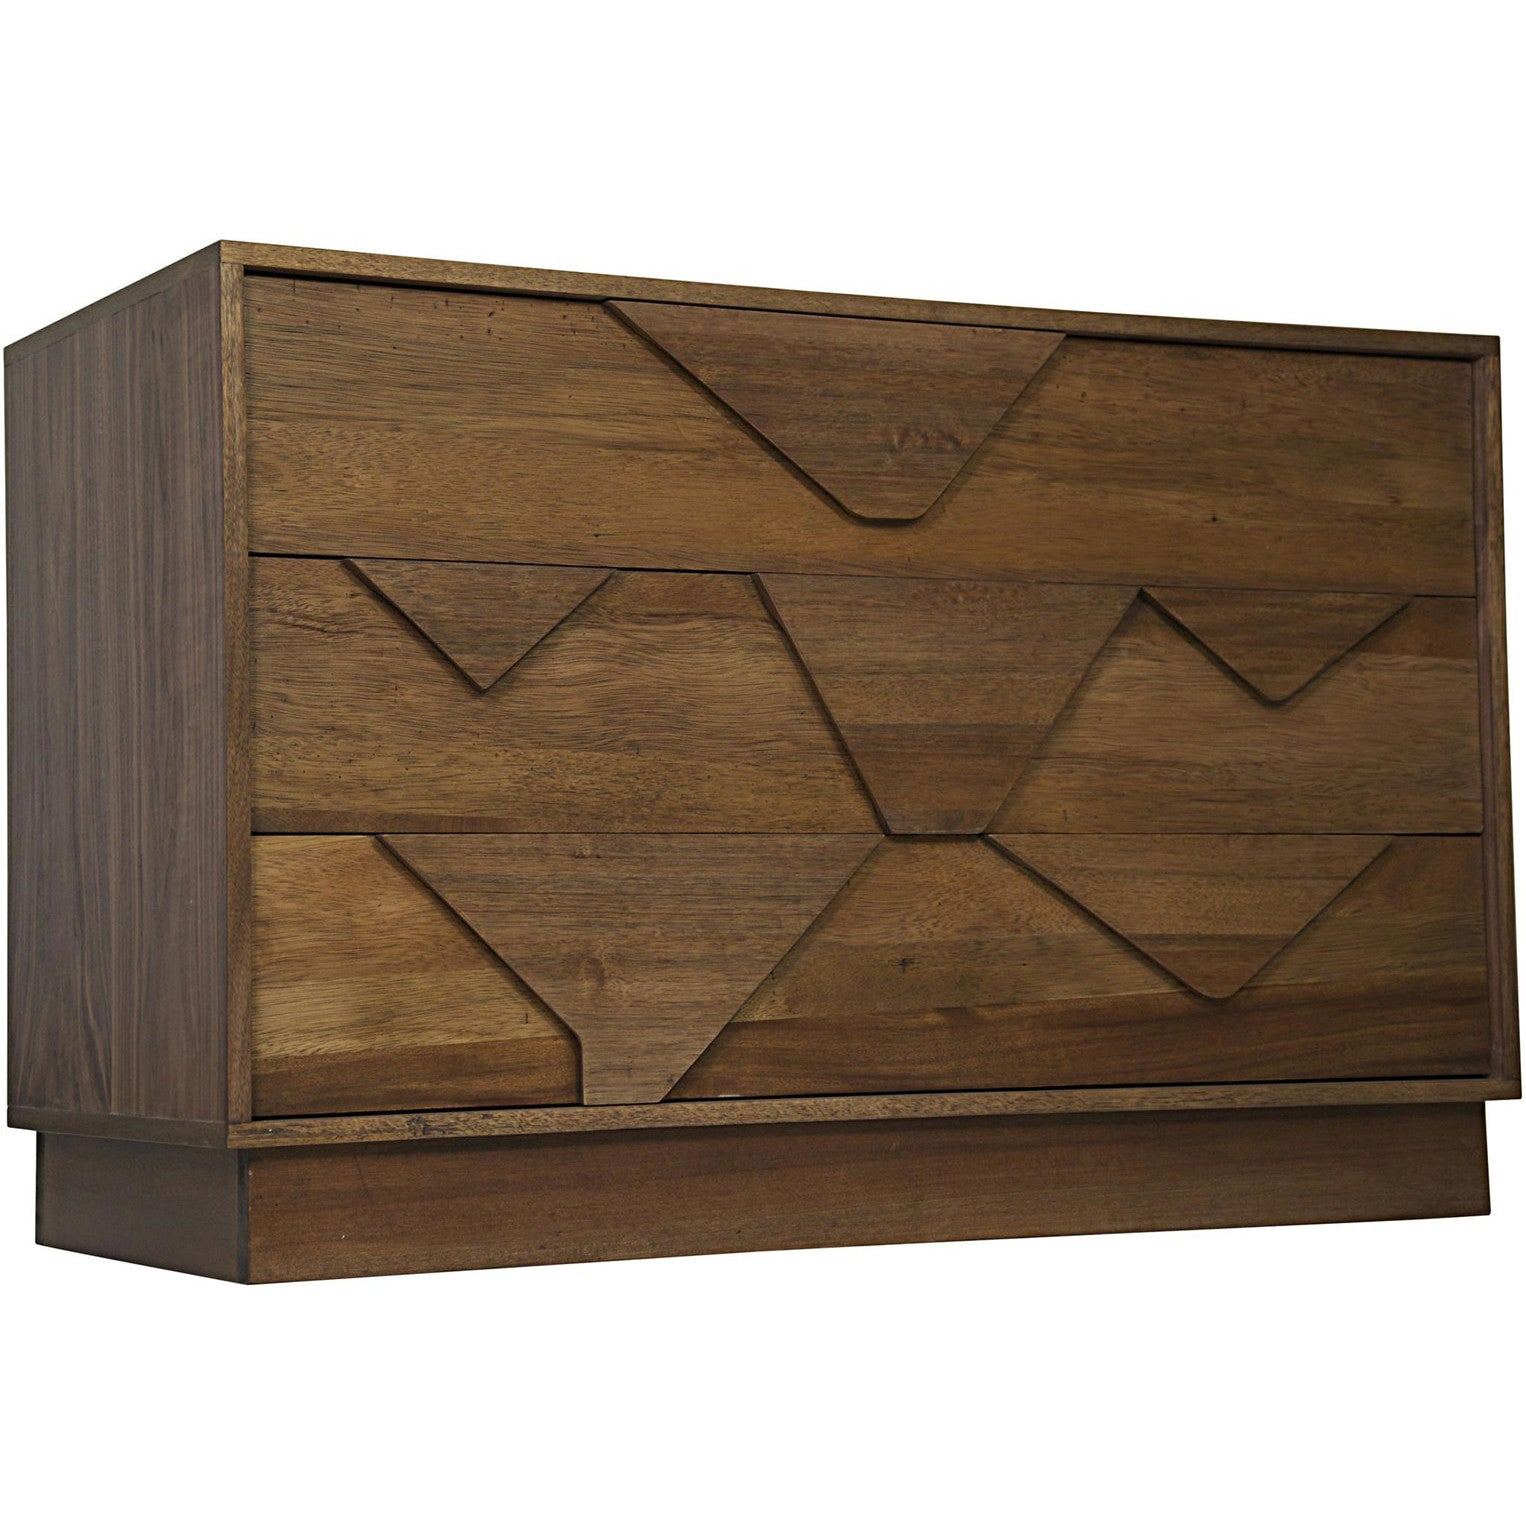 Noir - Cascata Chest, Dark Walnut